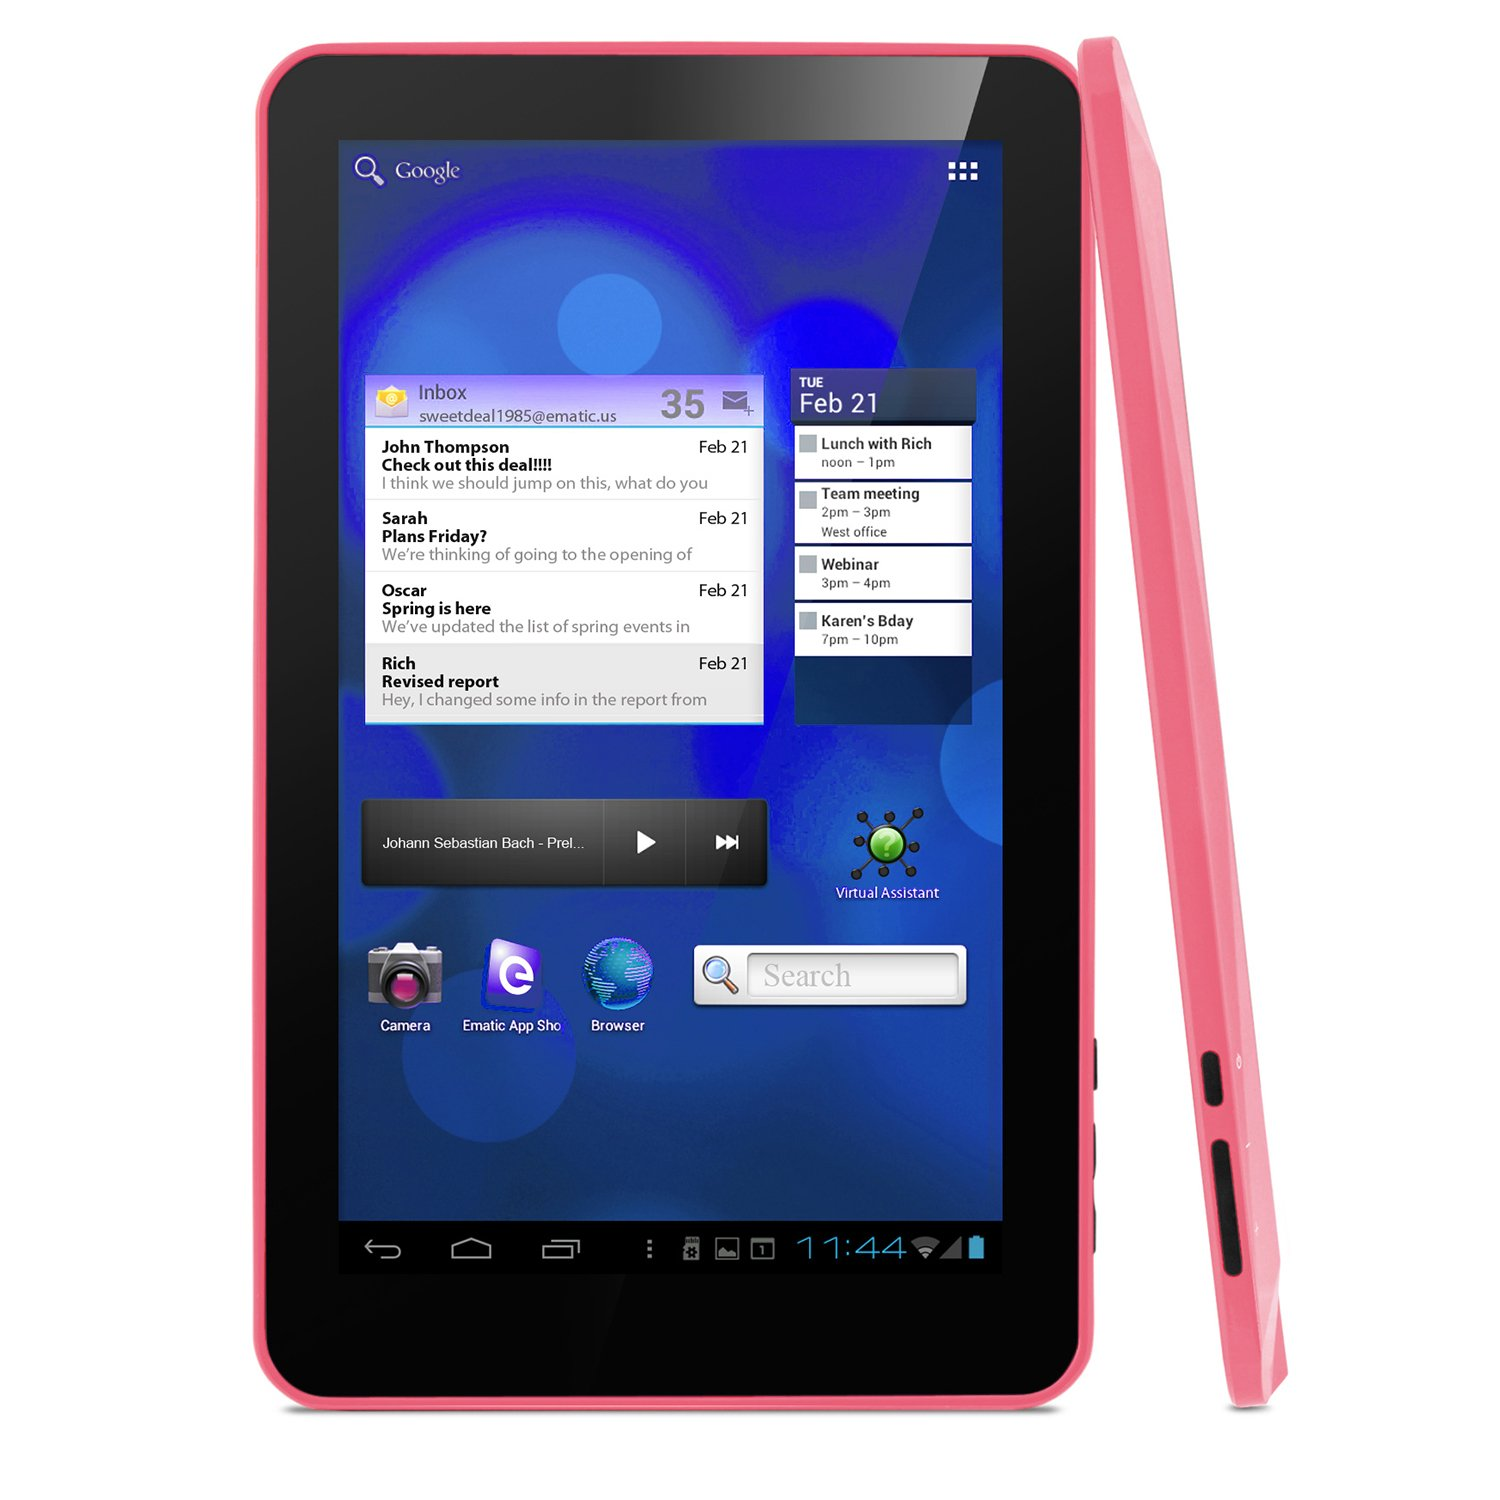 Amazon.com: Ematic eGlide XL Pro II Internet Android 4.0 ...